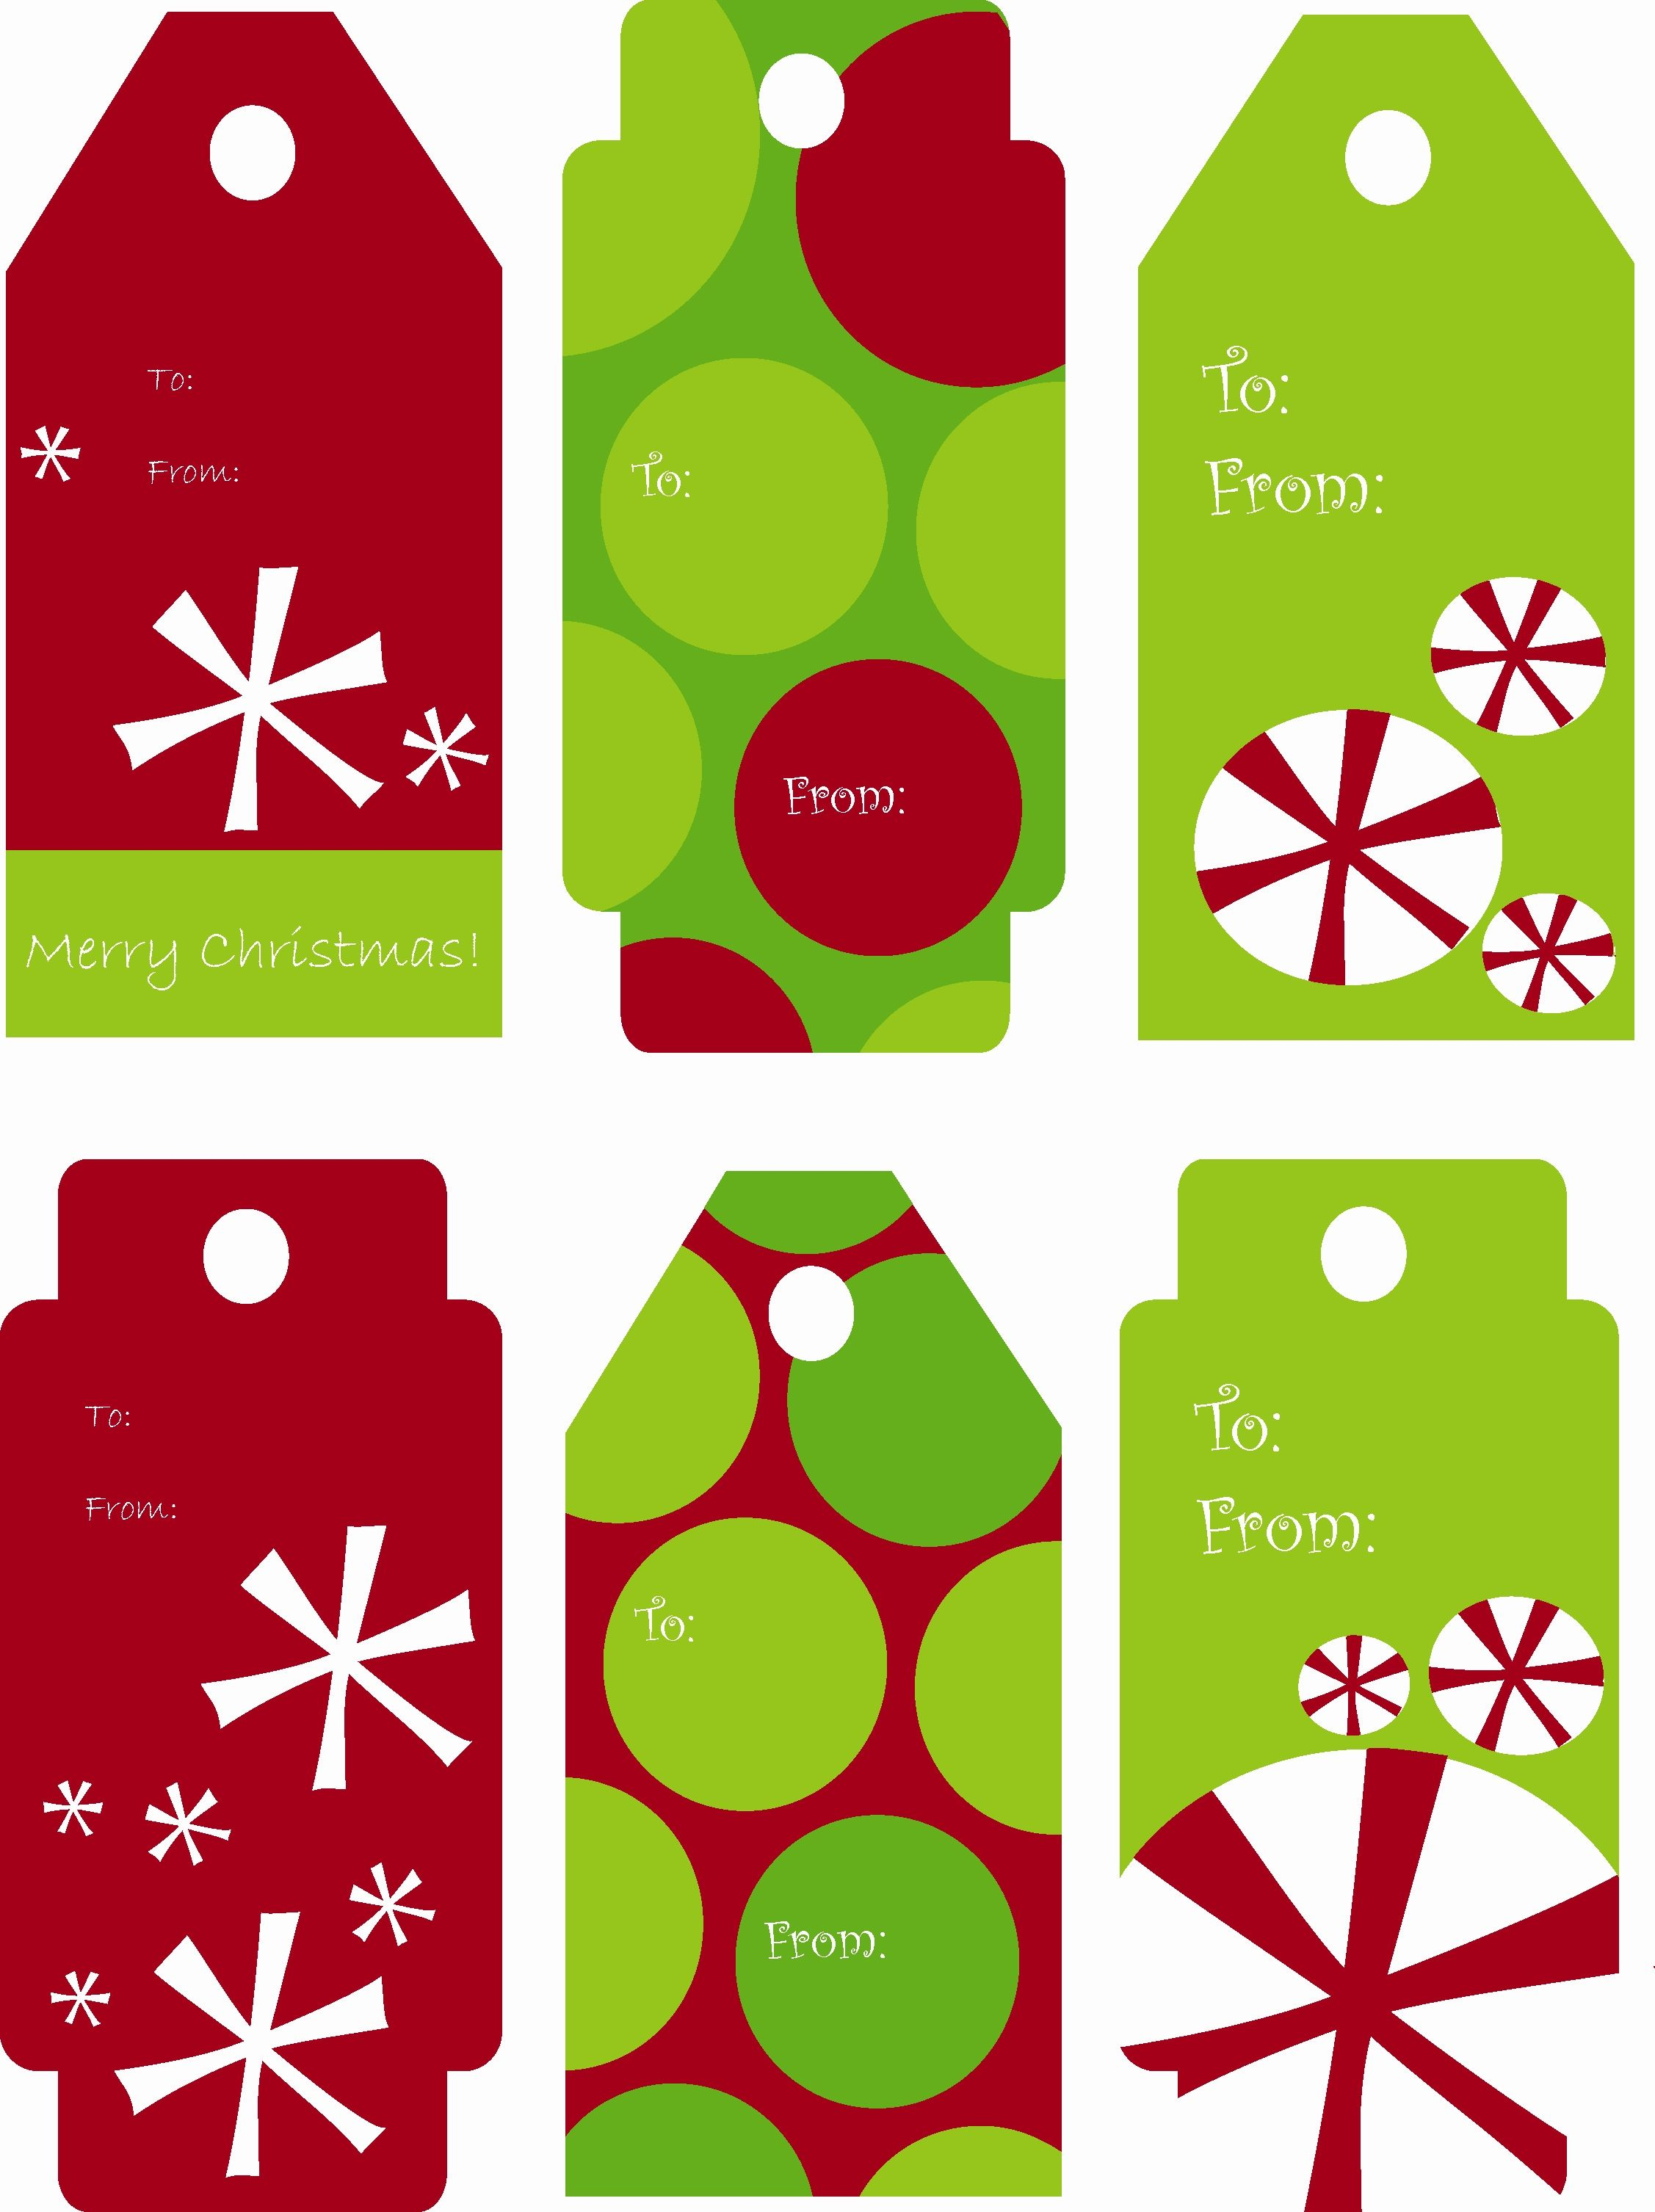 Gift tag template gift tags recipes cookie exchange ideas pinterest christmas tag free for Name tags christmas